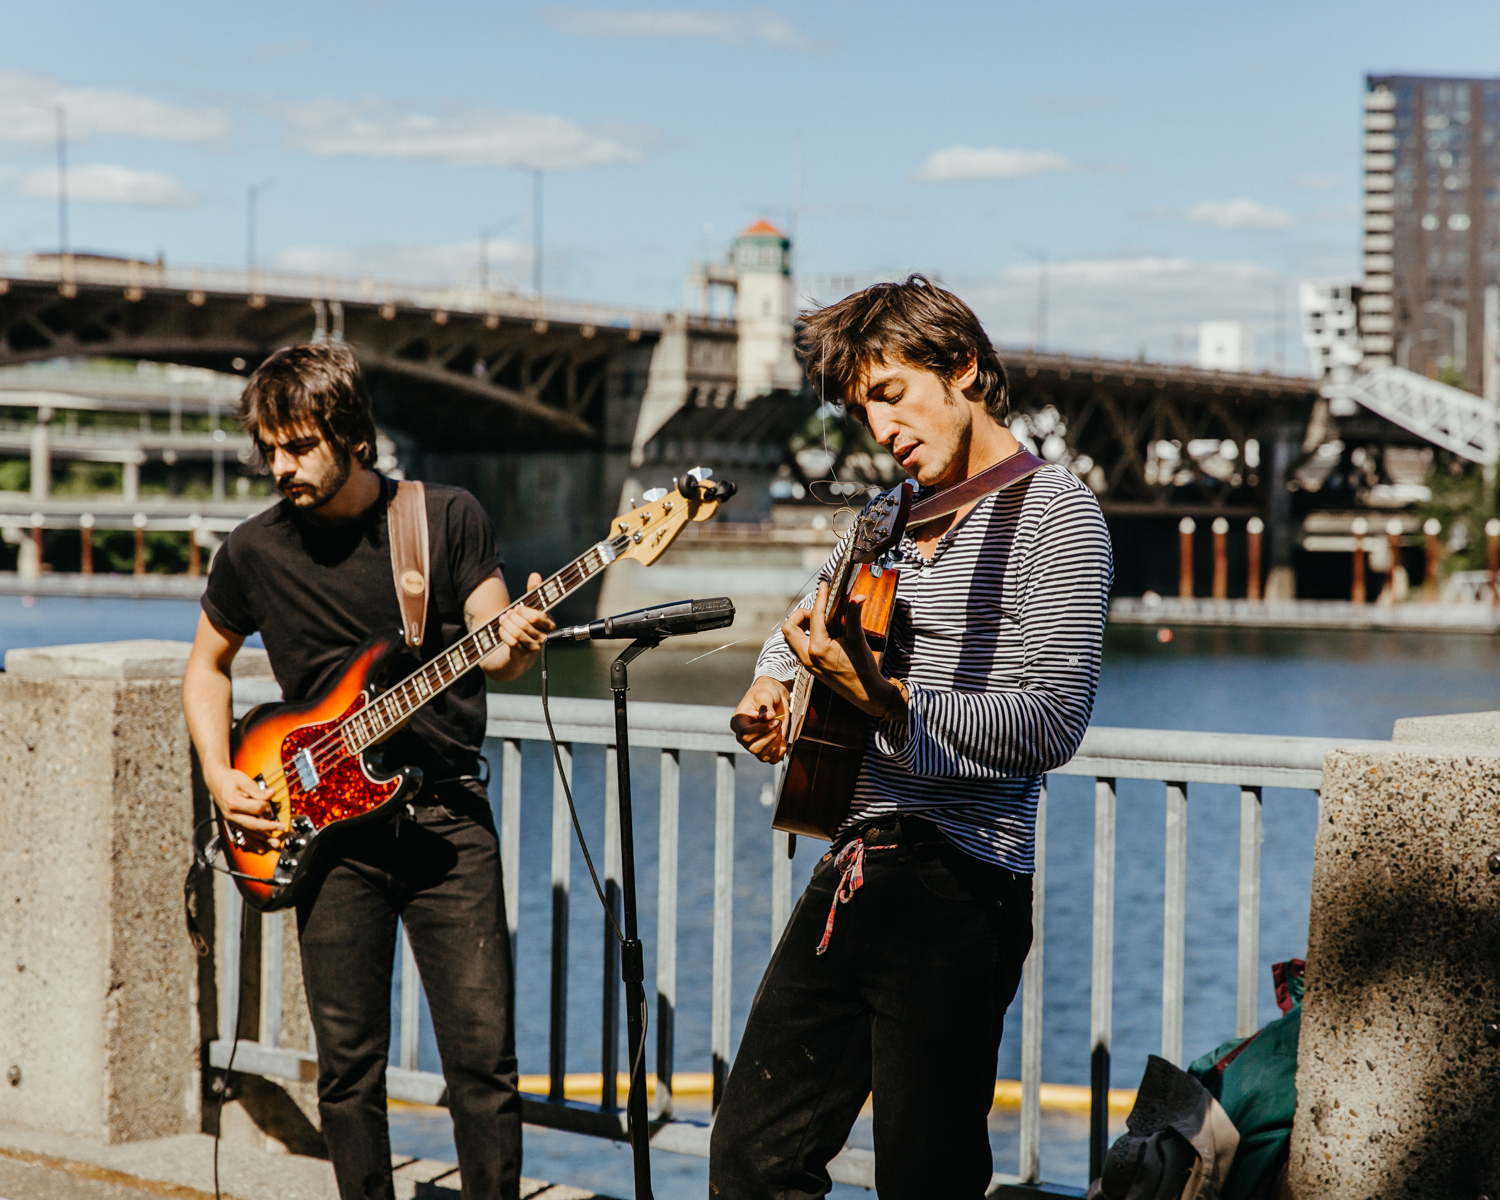 two guitarists busk along the waterfront